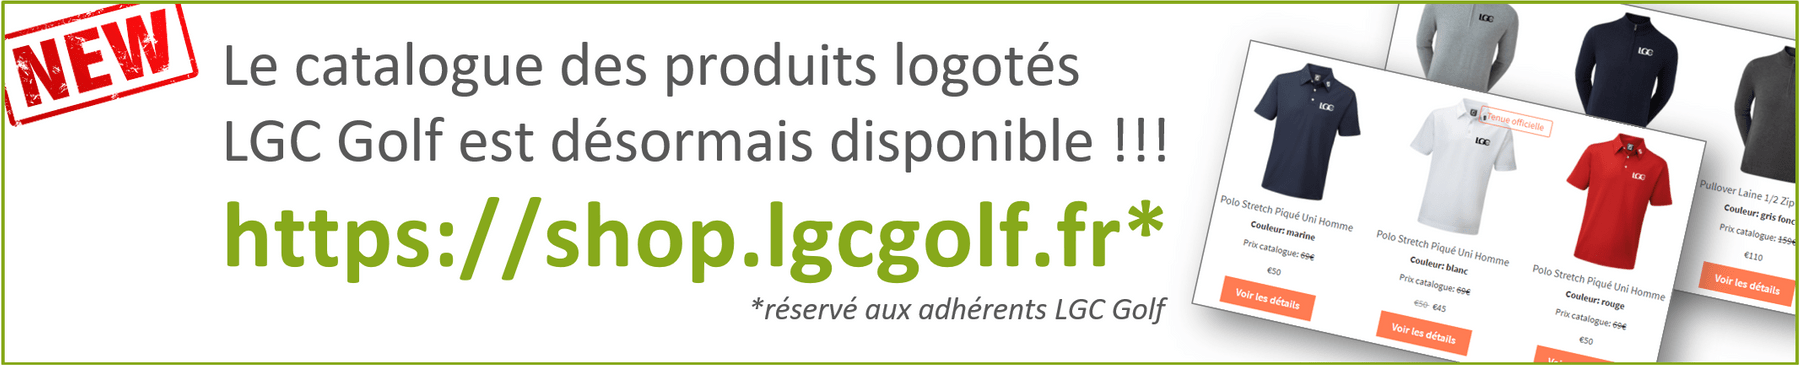 Catalogue LGC Golf